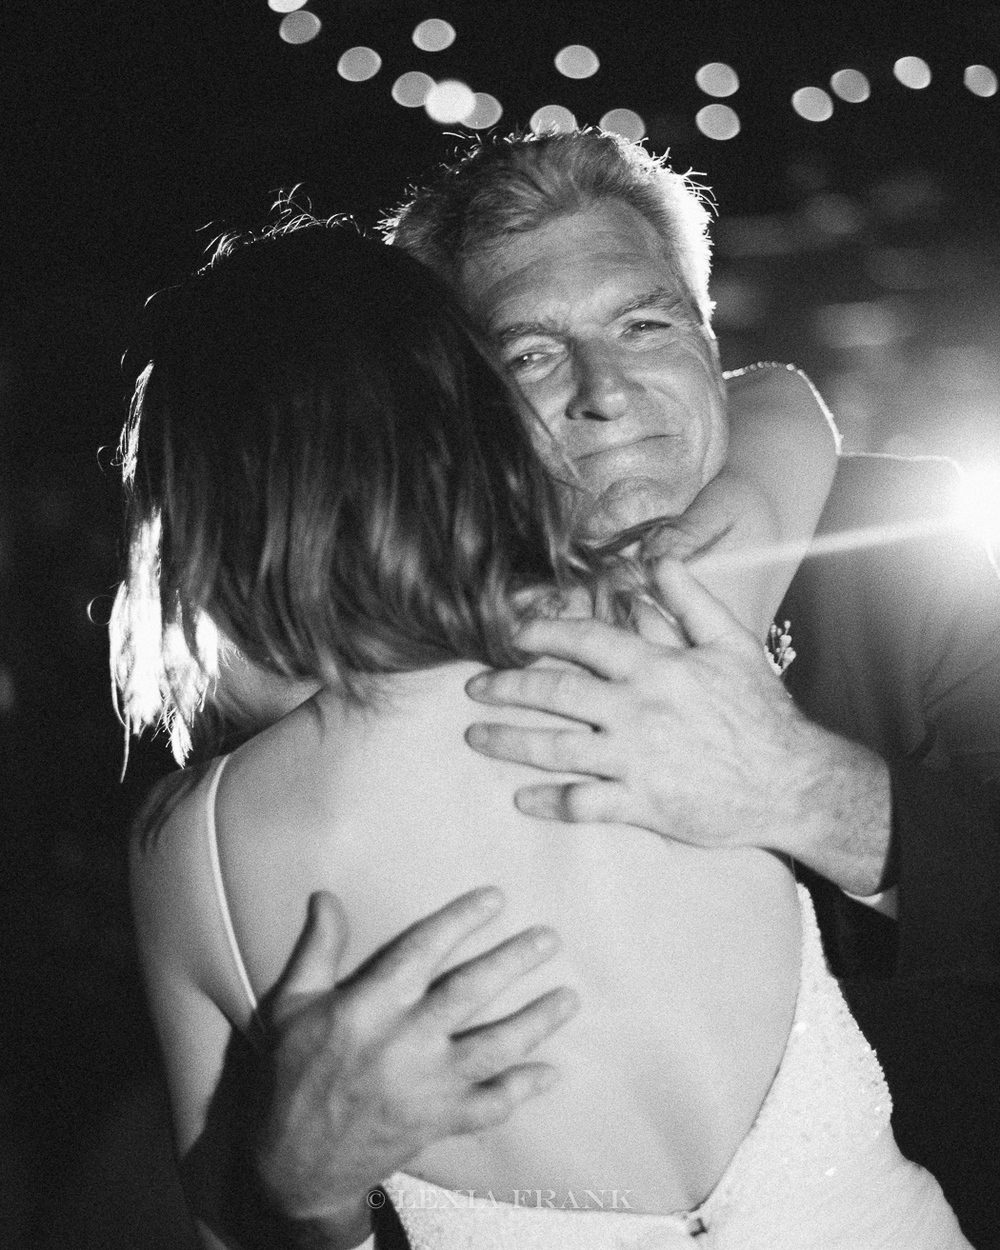 destination wedding photographer Lexia Frank- a portland oregon fine art film photographer- photographs this luxury wedding at whistling straits golf course wedding on film - best reception photos